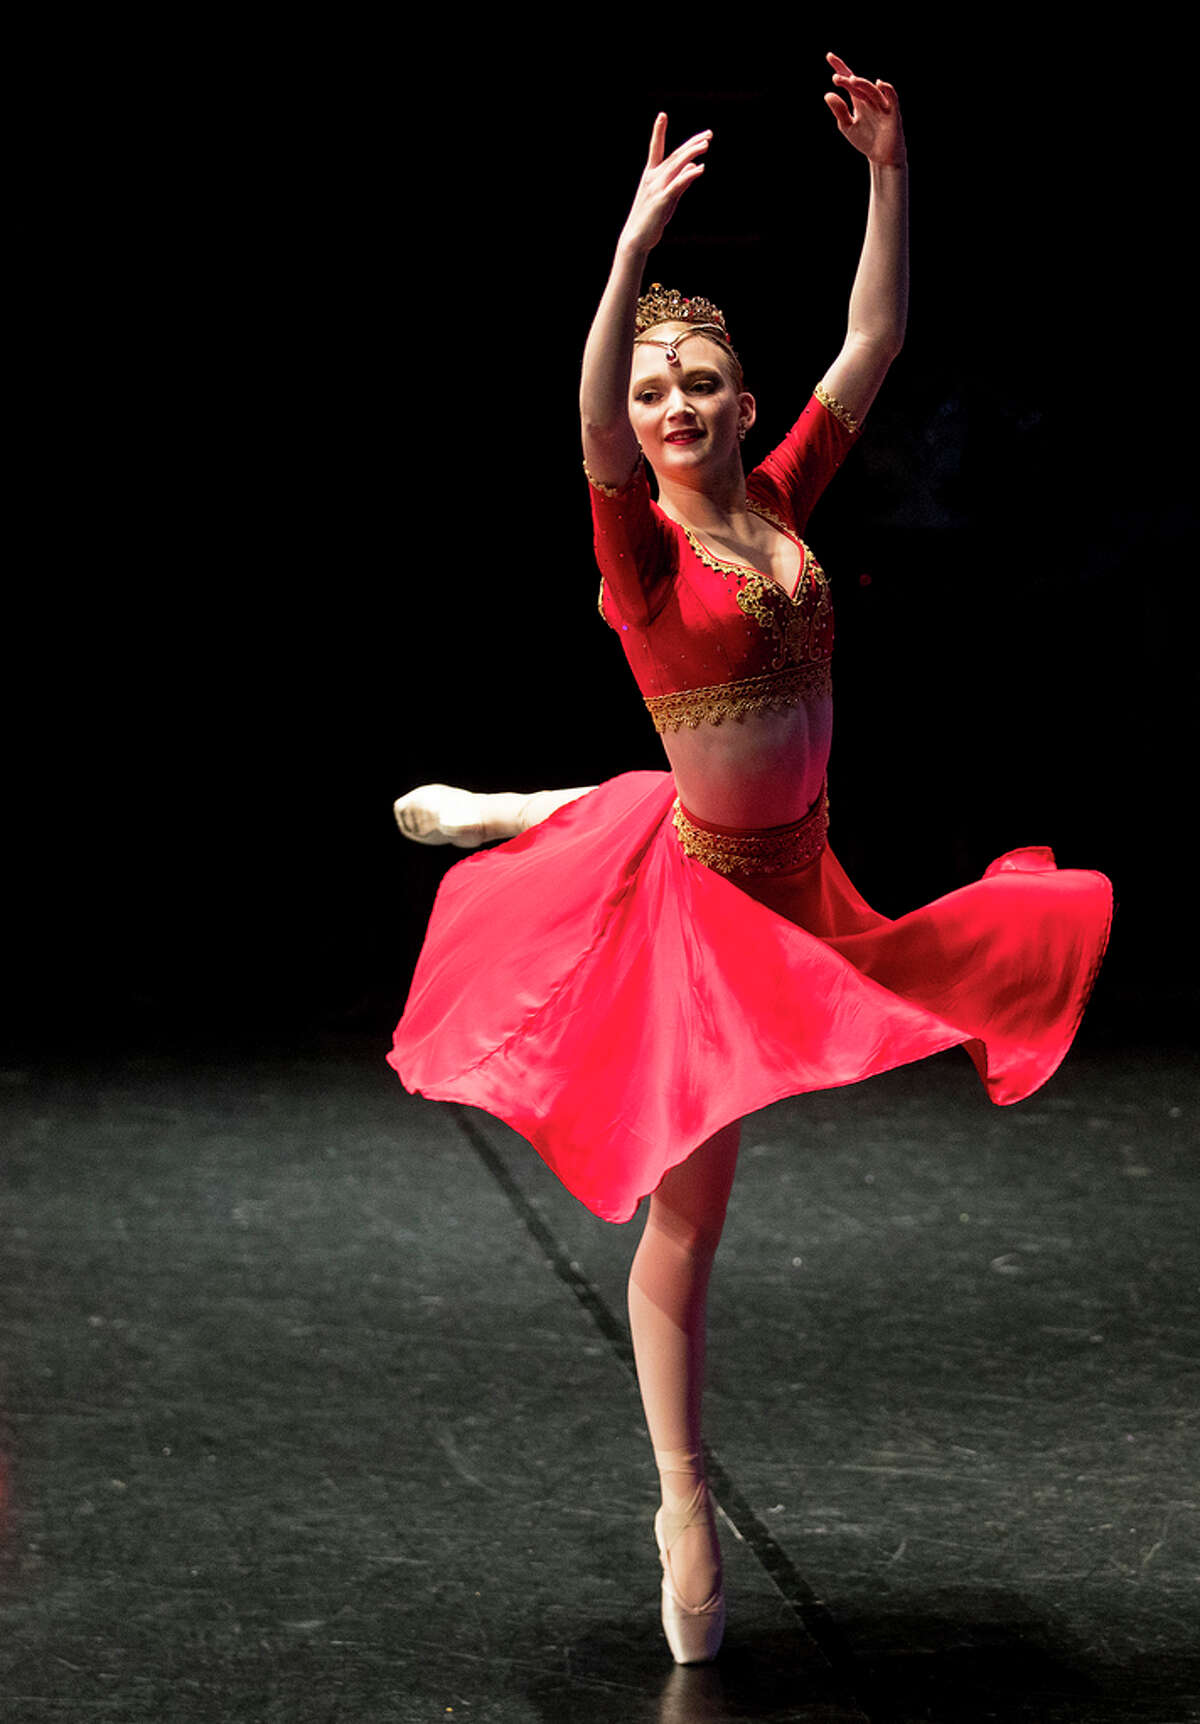 Eliza Sell performs during the Youth America Grand Prix semi-finals at CullenPerformanceHall on Saturday, Feb. 16, 2019, in Houston. Hundreds of young ballet dancers - ages 9 to 19 - from all over Texas auditioned for the Youth America Grand Prix. Students are attending workshops, dance classes, and audition in hopes of making finals week in New York, where scholarships to top schools and companies will be awarded.